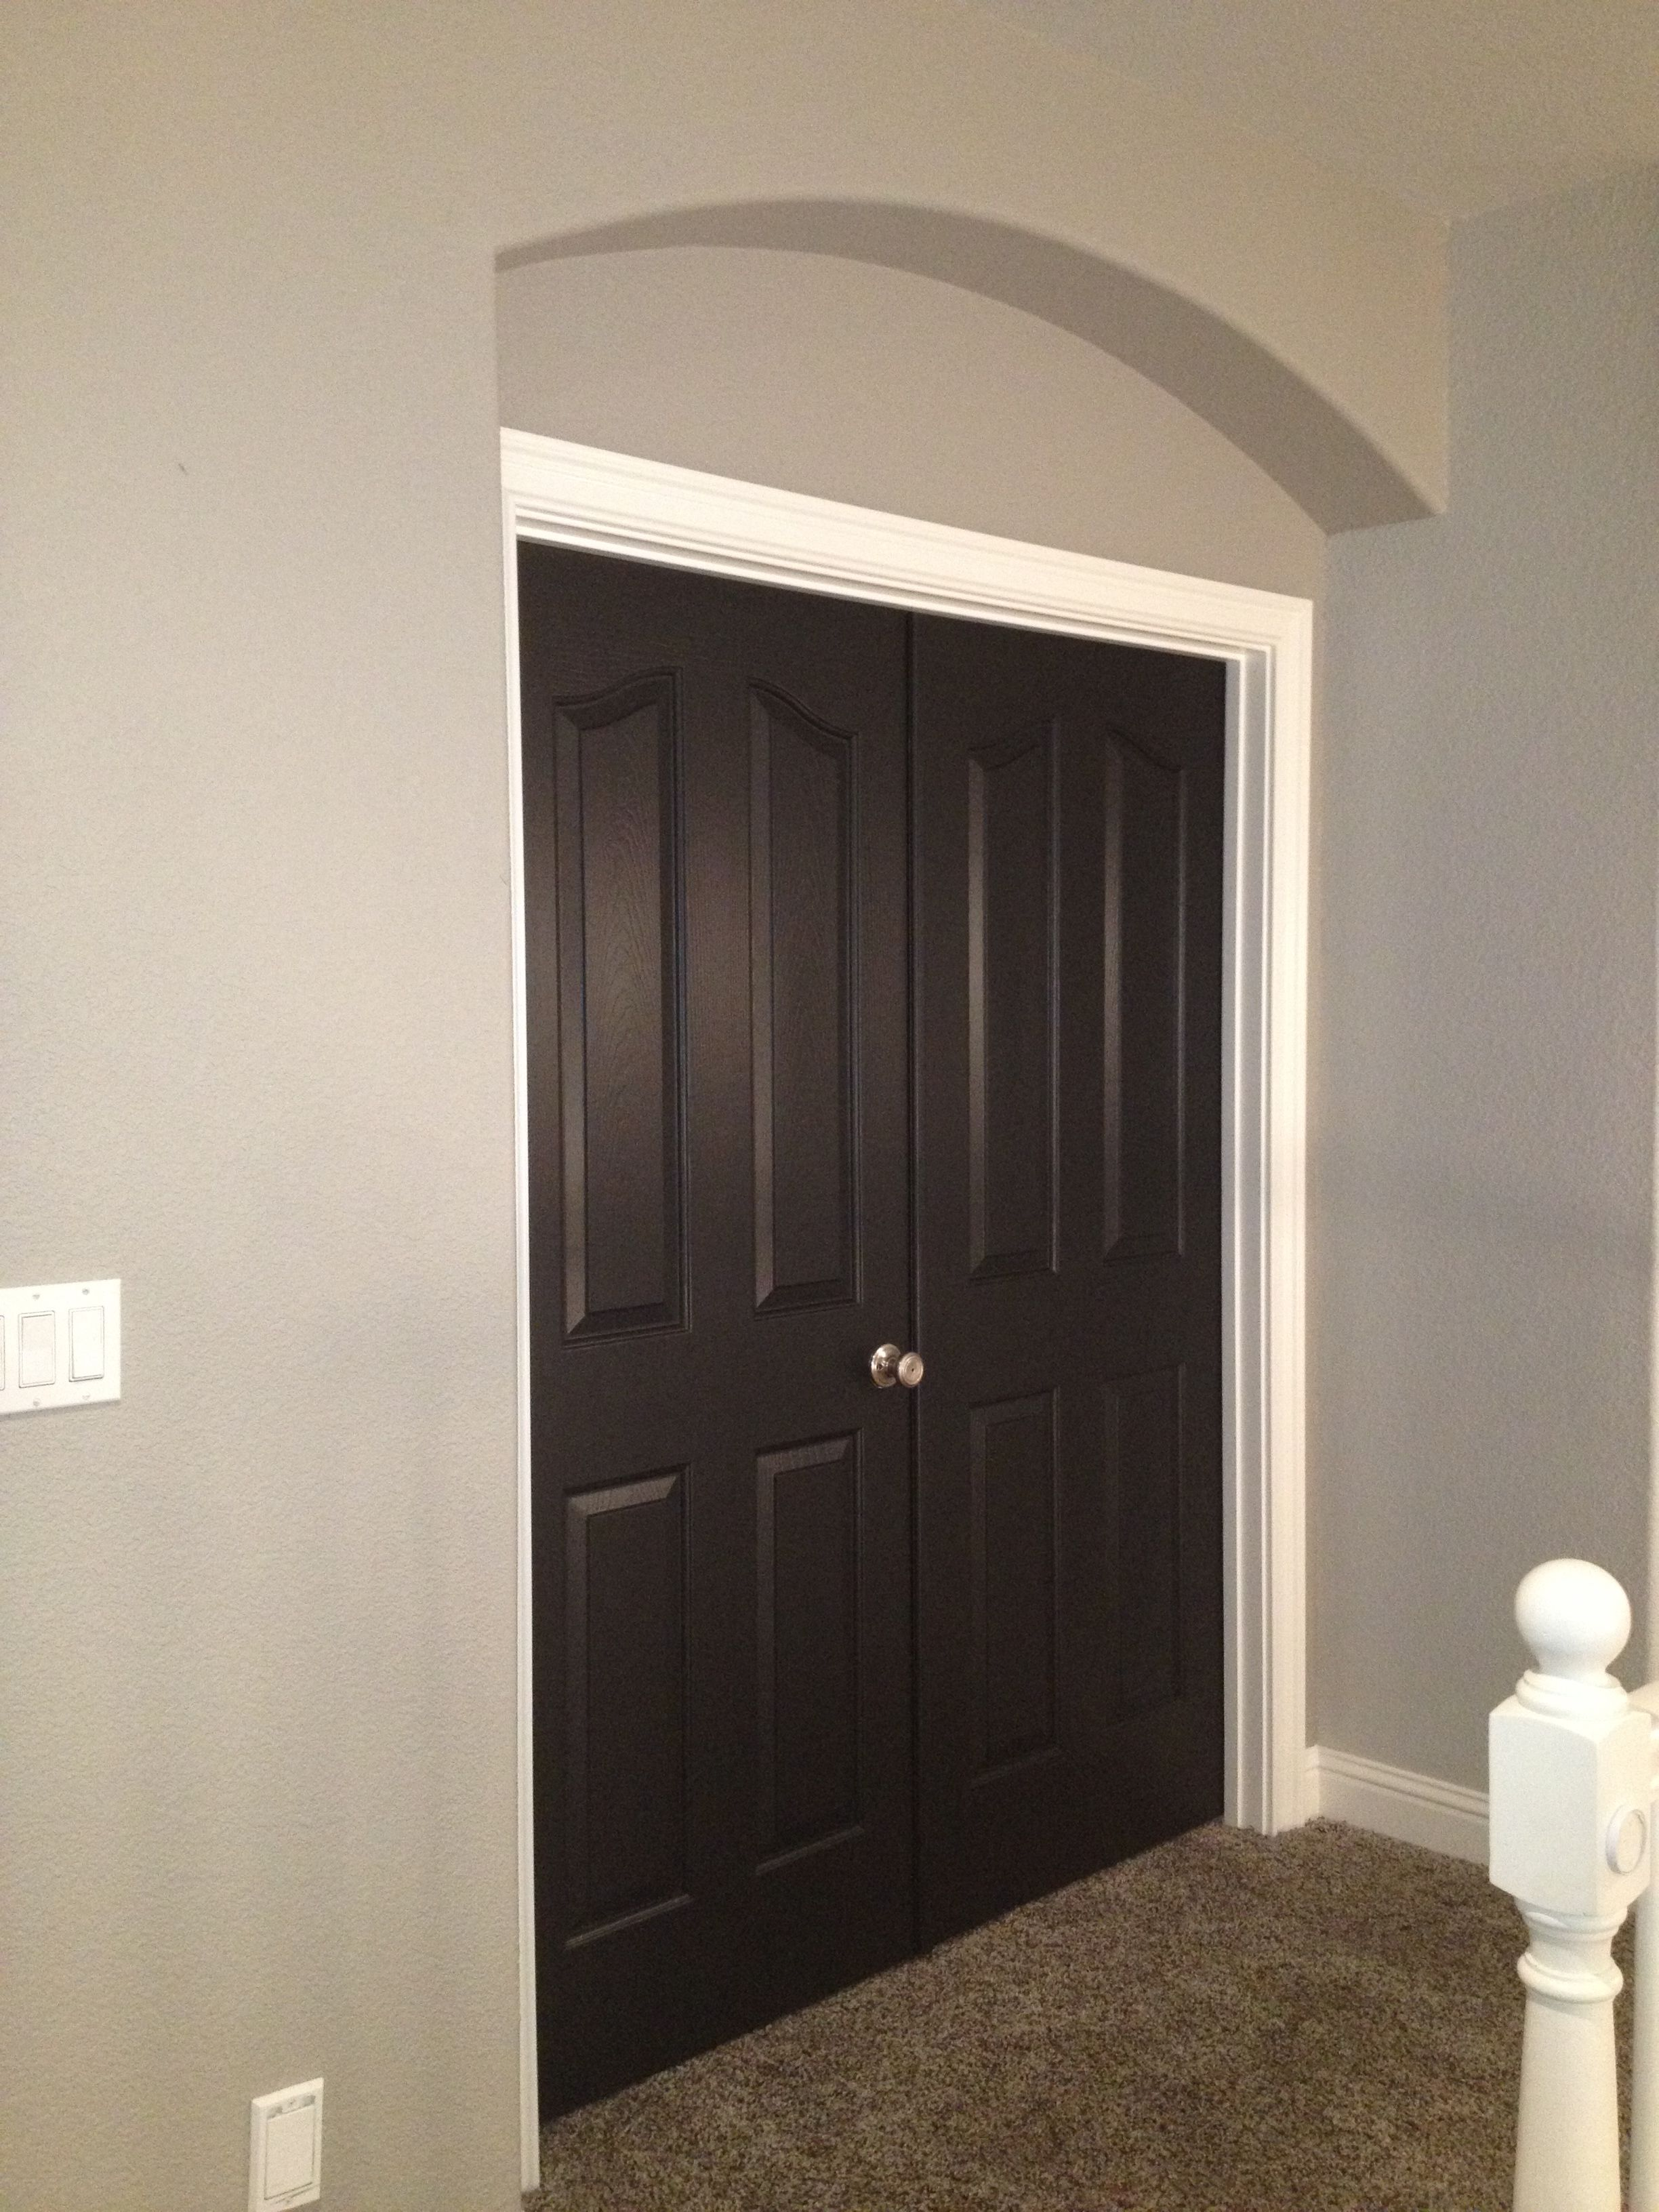 Greige Walls And Black Doors We Will Have Wood Not But The Brushed Nickel Looks Way Better Than I Expected